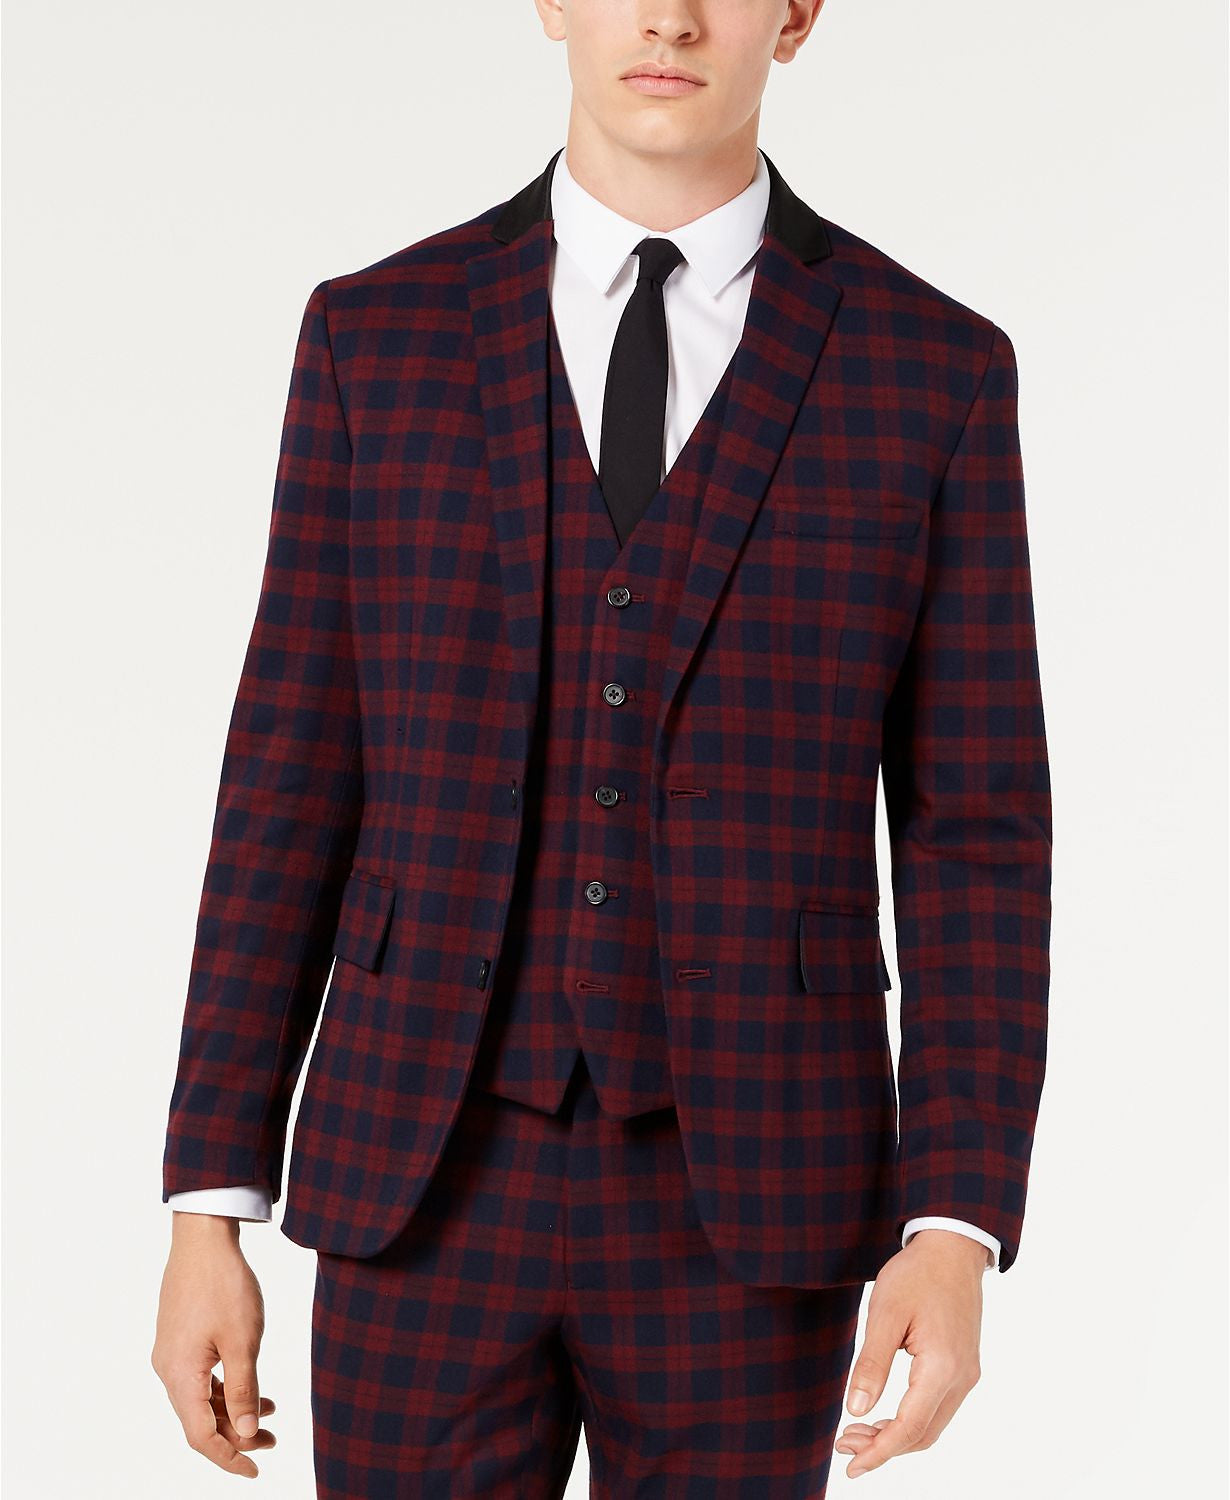 Inc International Concepts Slim-fit Tartan Blazer Burgundy Combo